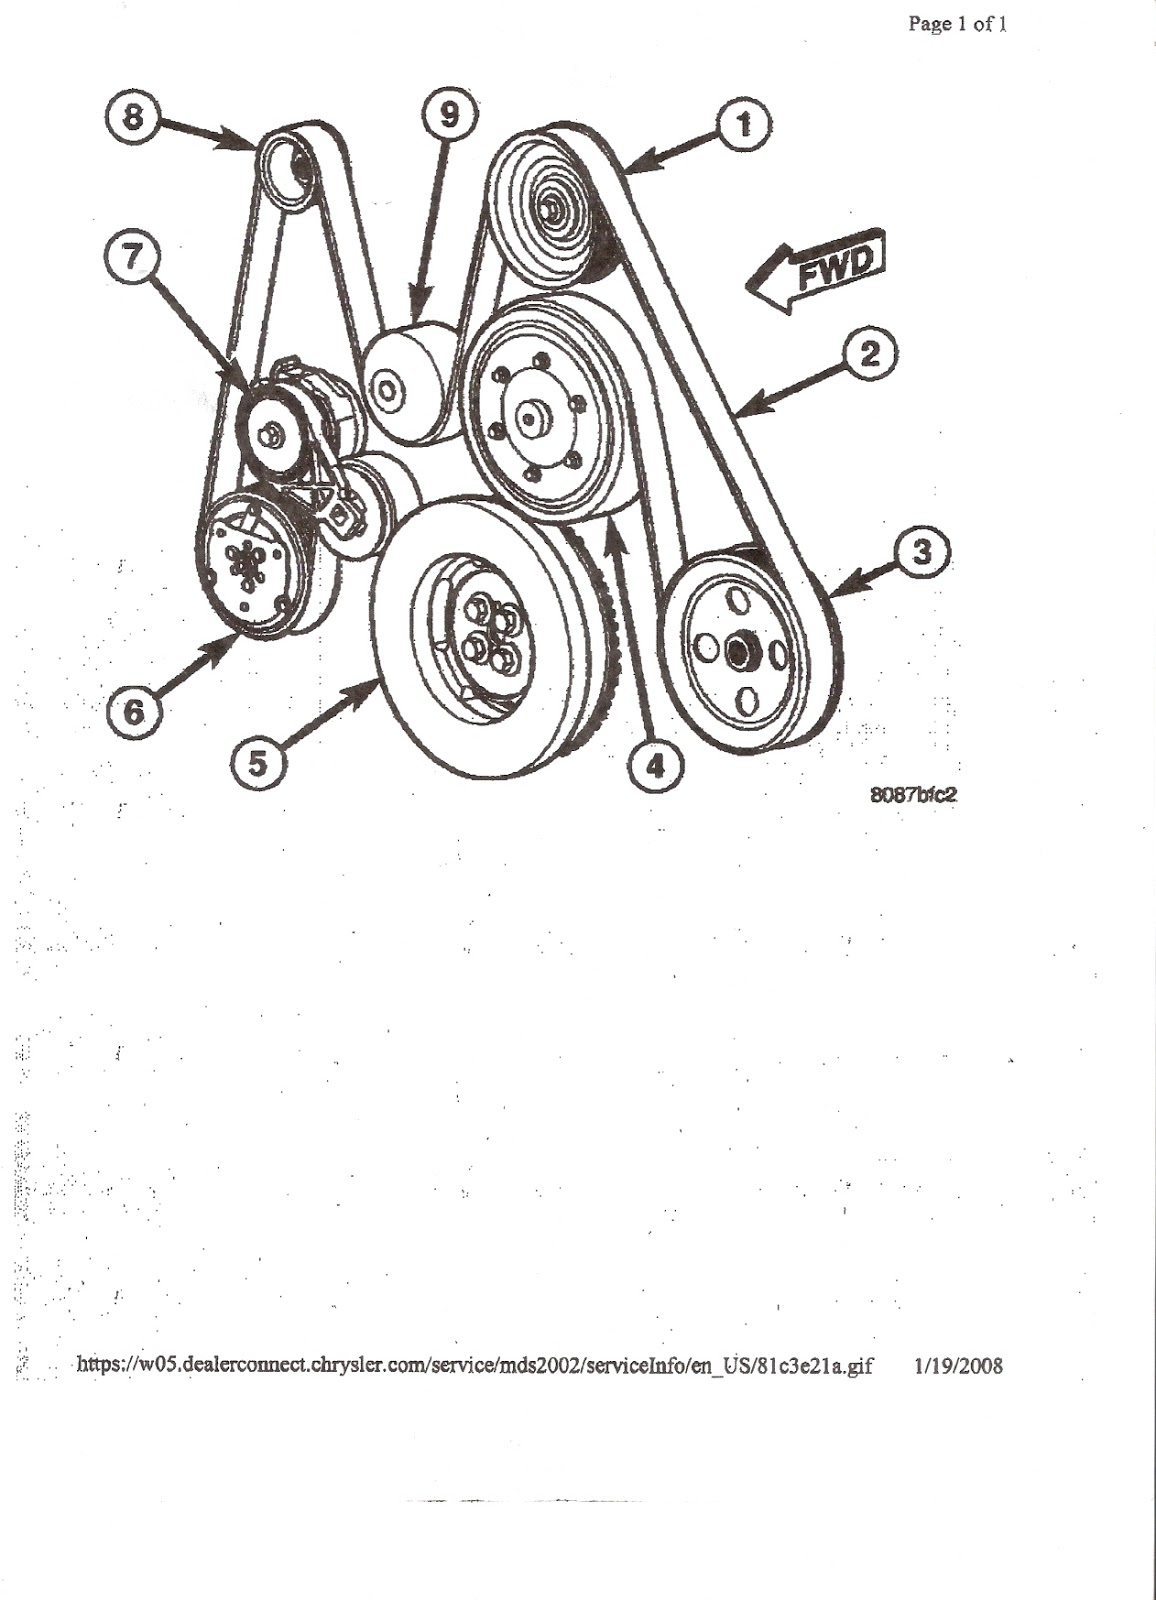 2010 Dodge 2500 Location Of Fuses Diagram 2009 Ram 1500 47 Serpentine Belt Books Wiring Zara Images Rh Beltzaraimages Blogspot Com